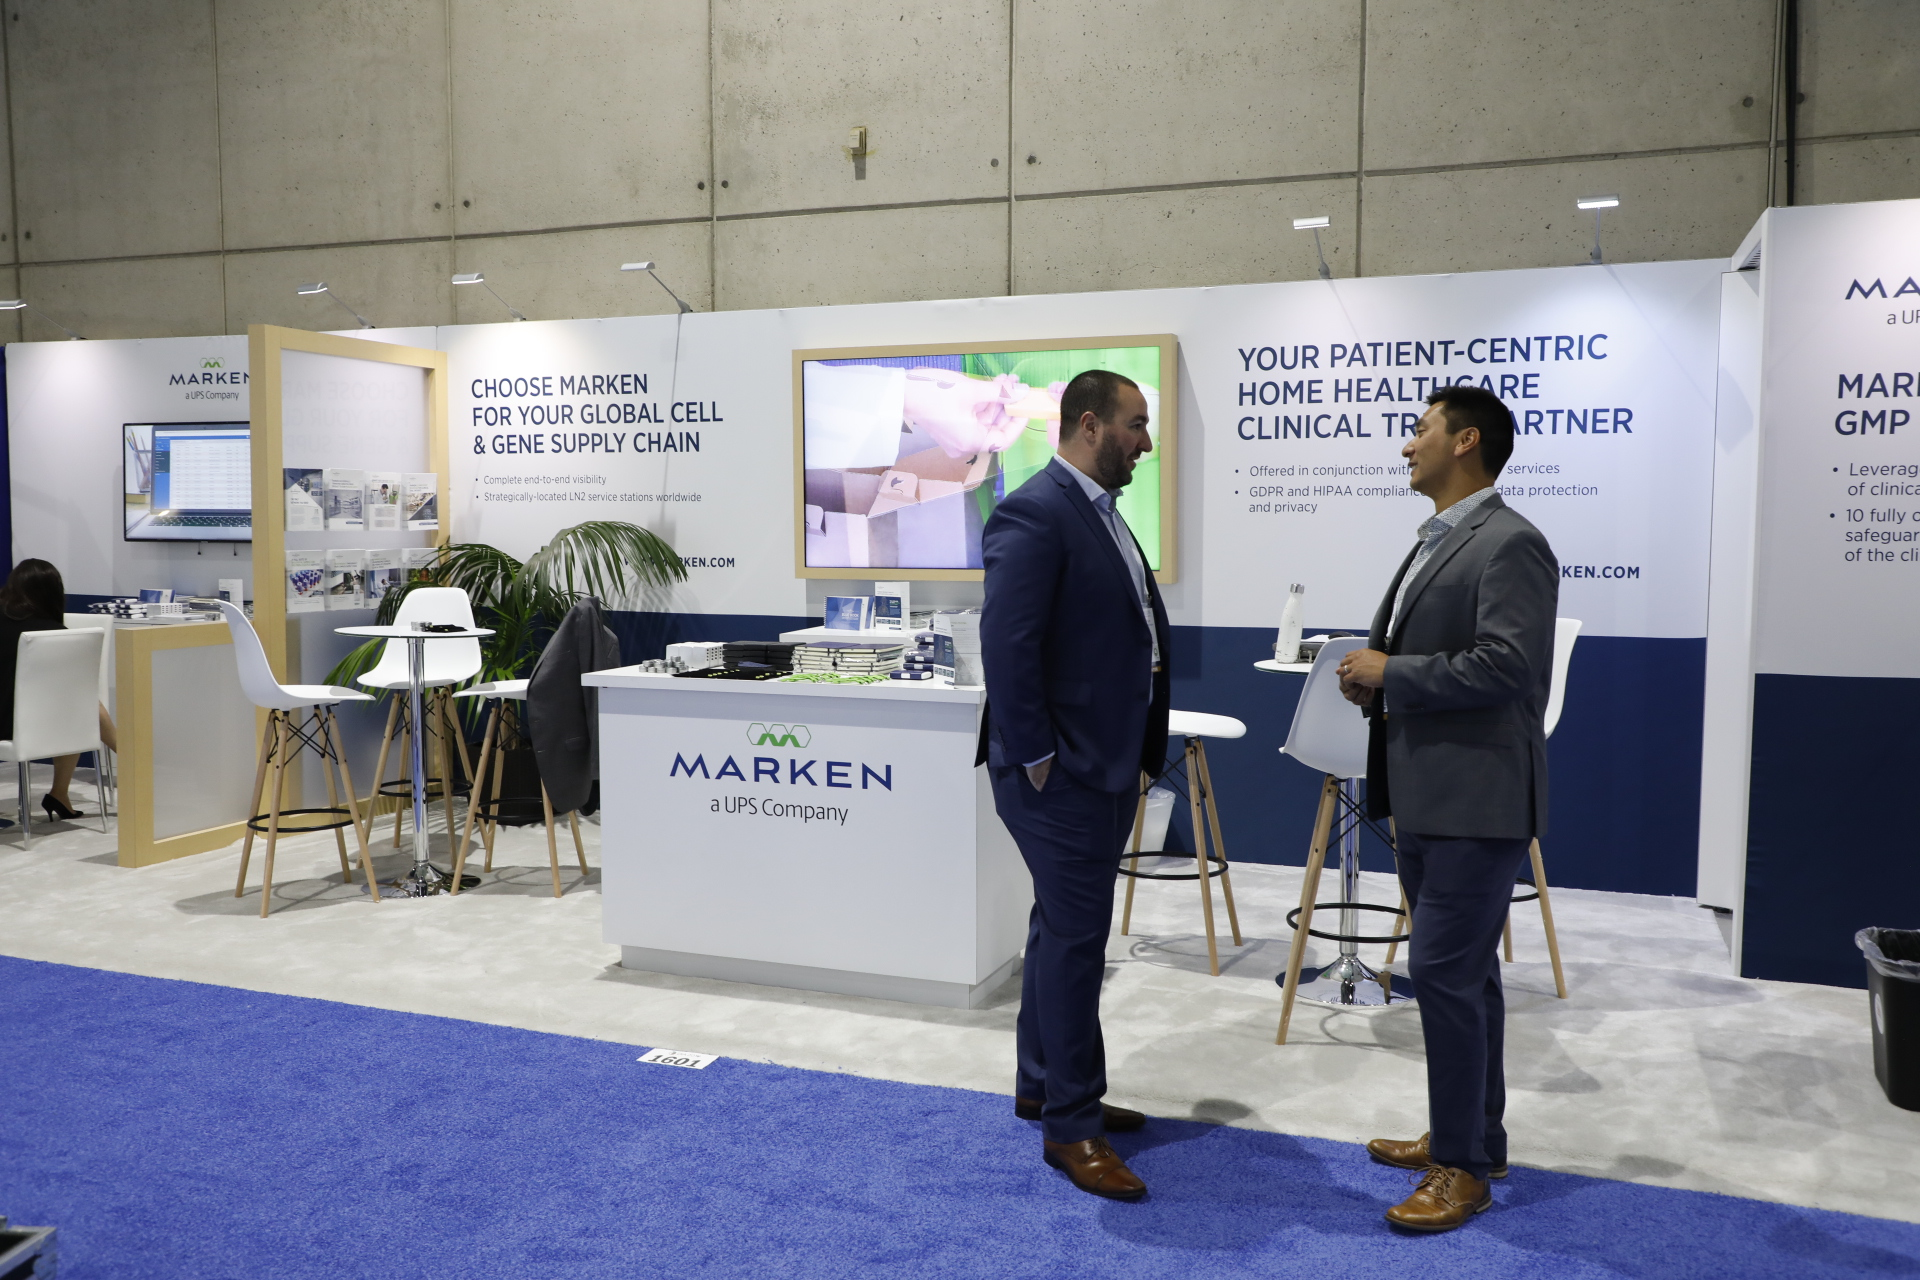 The DIA Marken Booth